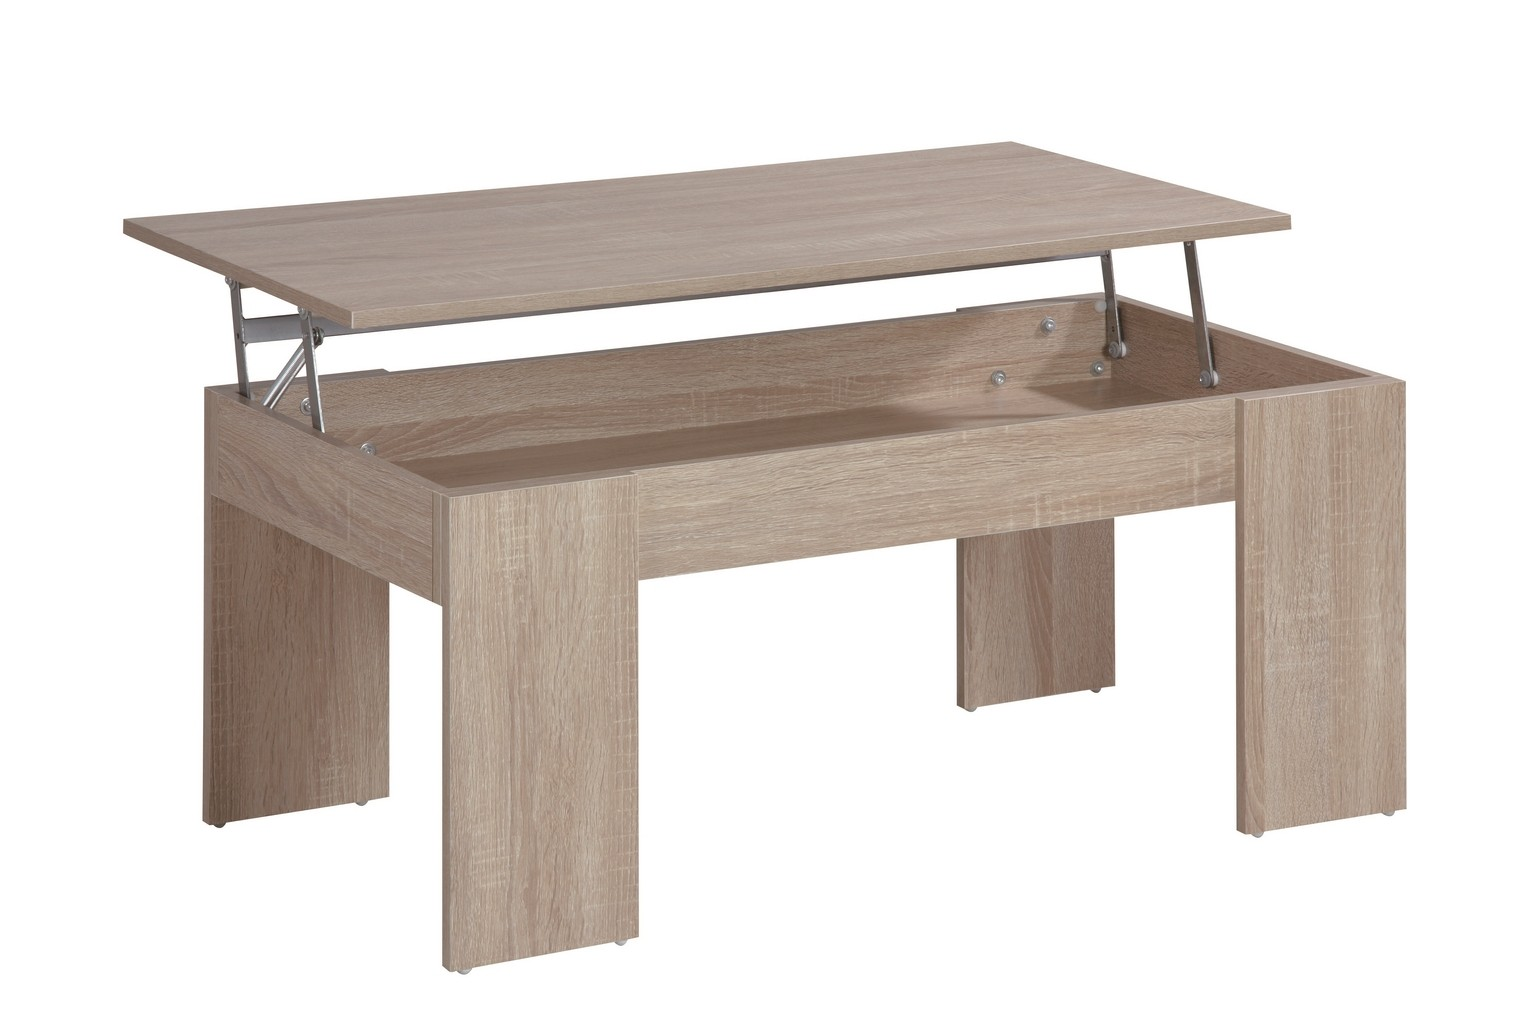 Table basse plateau relevable maison design for Fabriquer table relevable